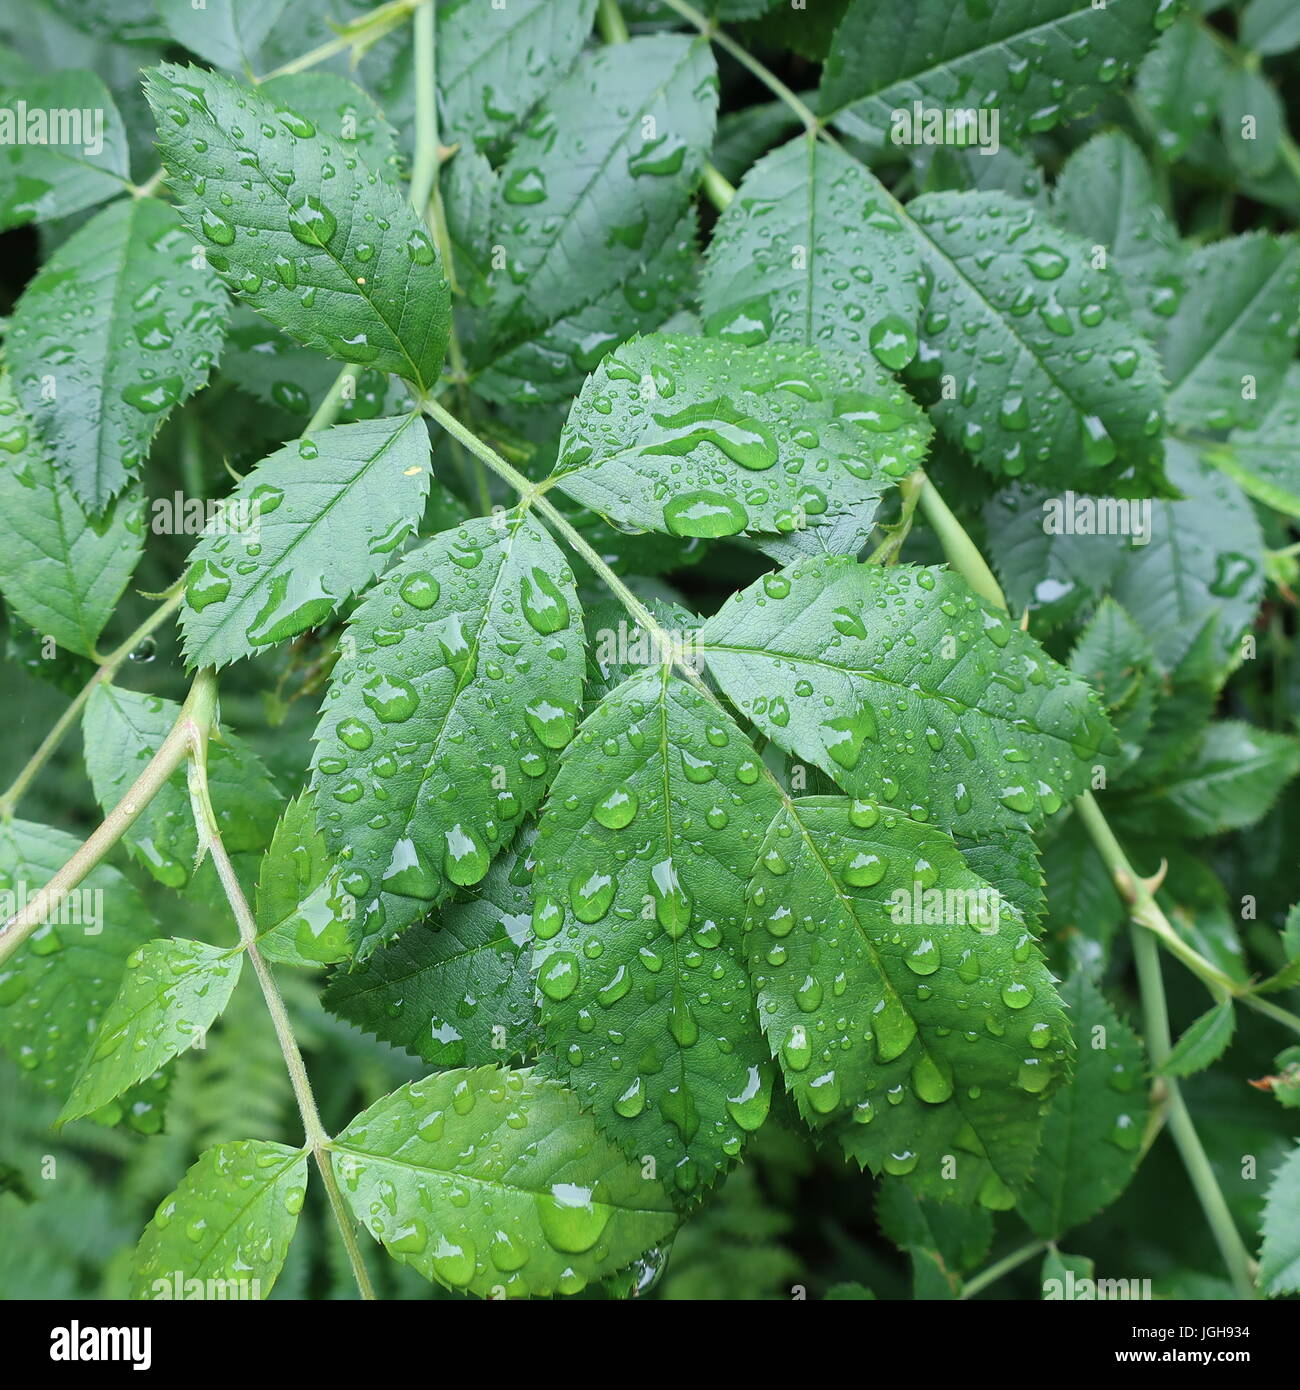 Rain drenched woodland leaves after a storm - Stock Image